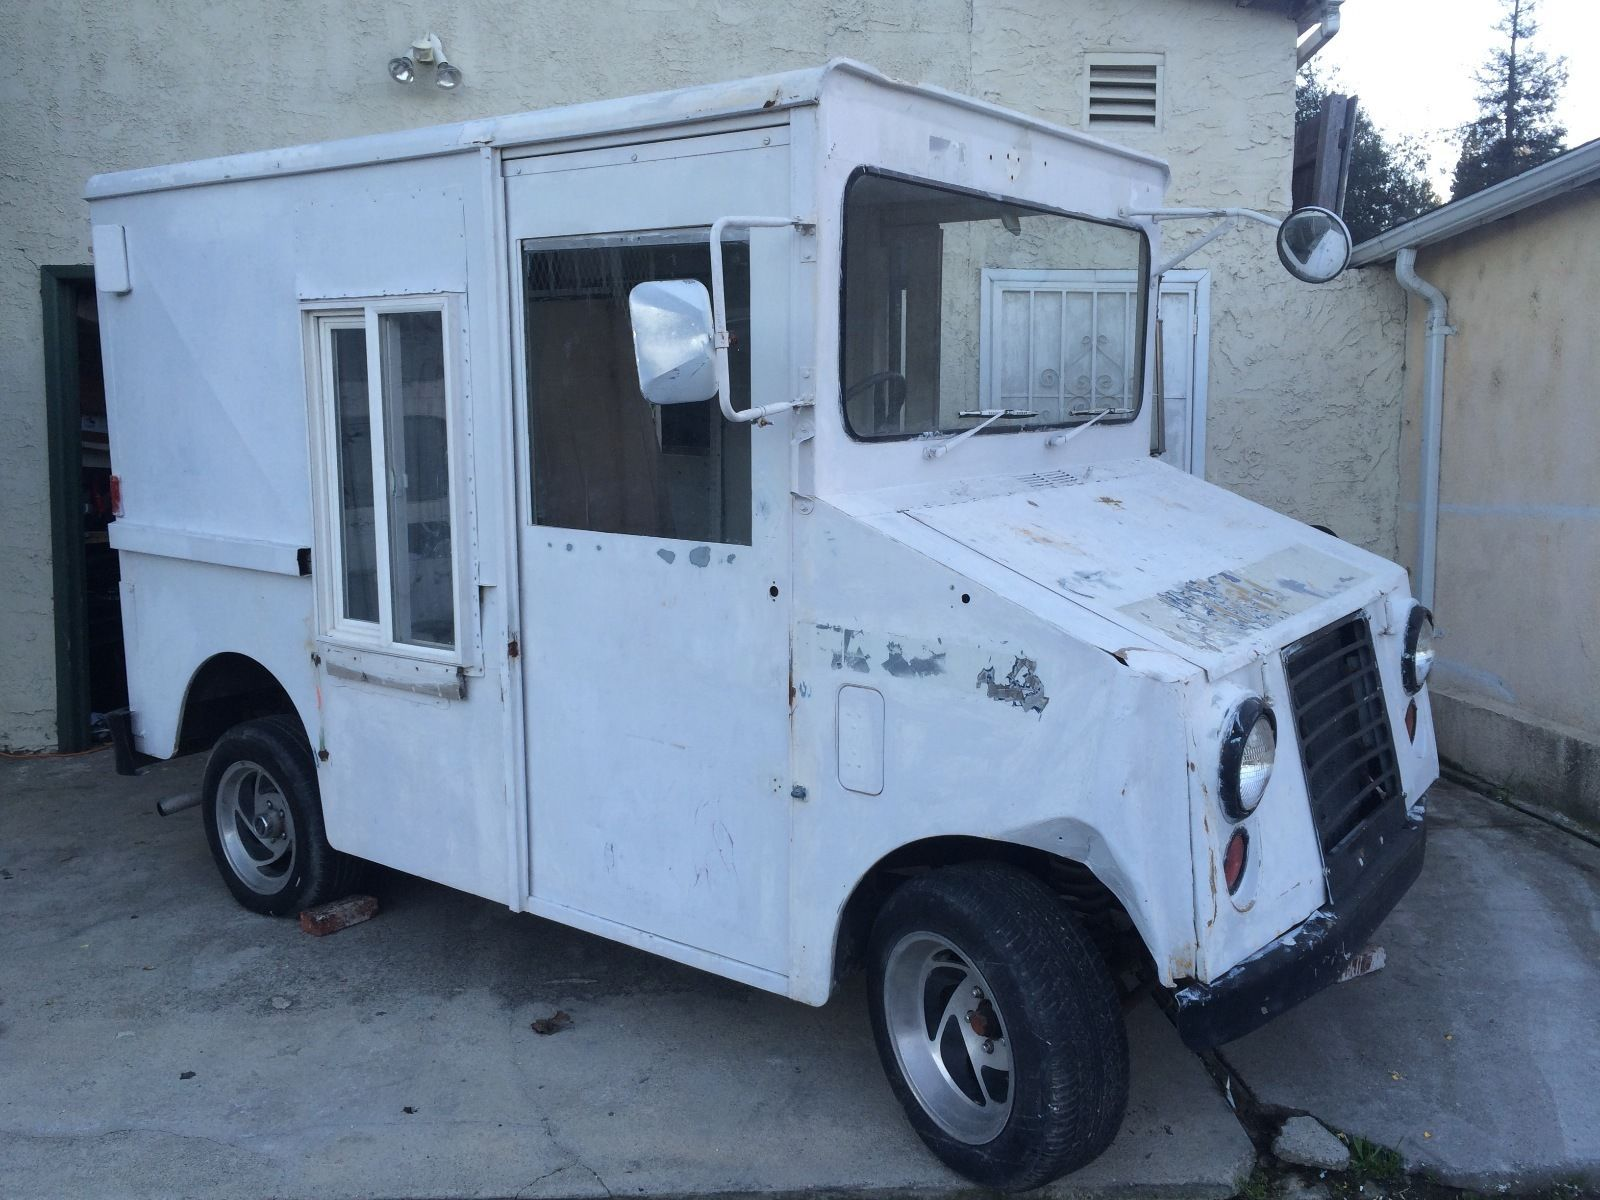 1971 Ford Postal Truck Ice Cream Truck Shorty Step Van Step Van Van For Sale Ice Cream Truck